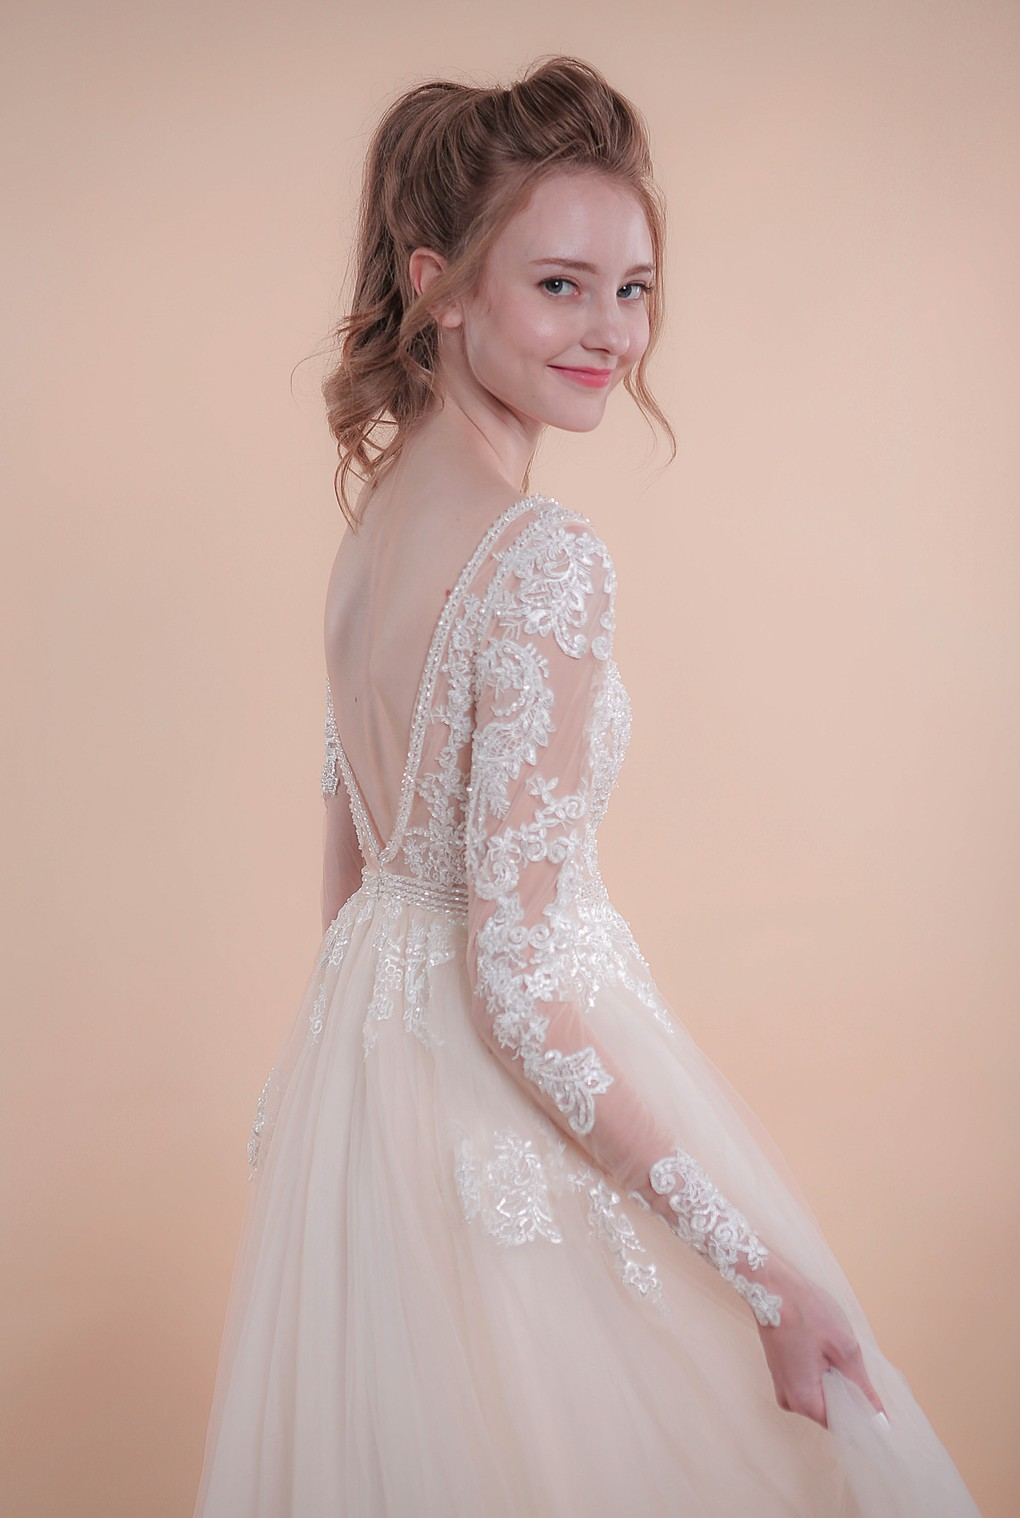 Now You Can Do Your Wedding Shopping Online With La Belle Couture